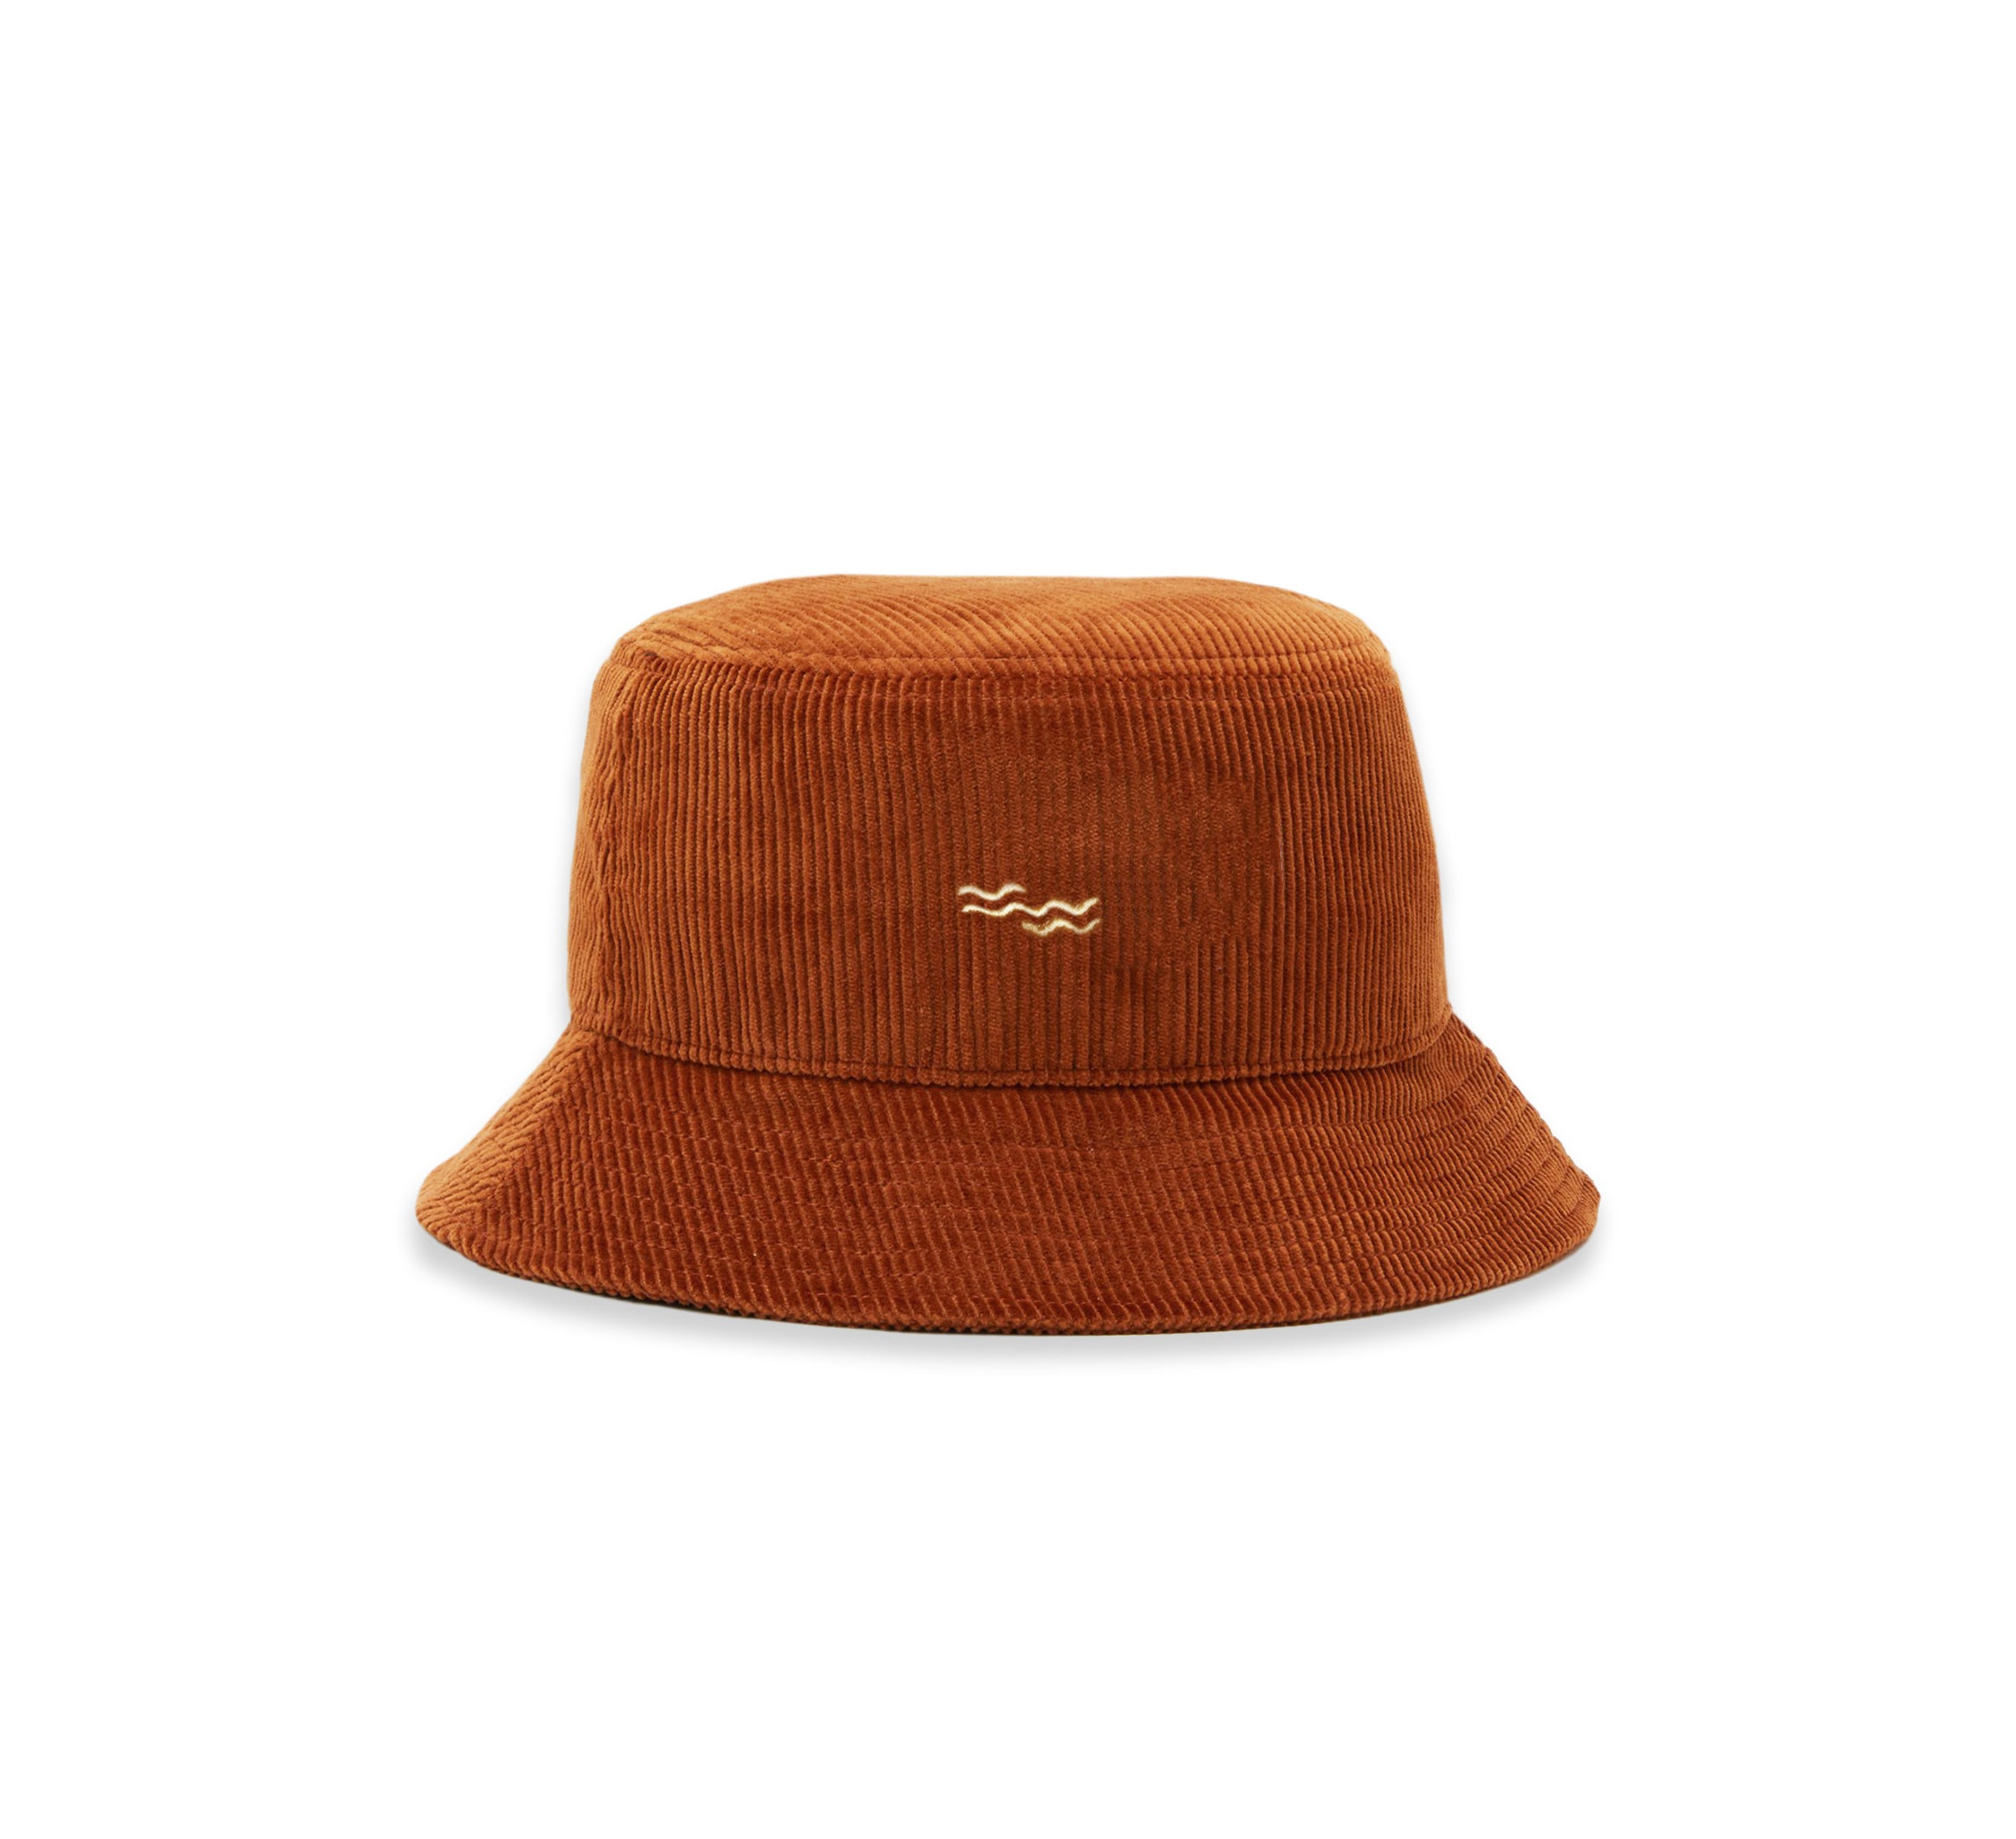 BRANDY BUCKET HAT